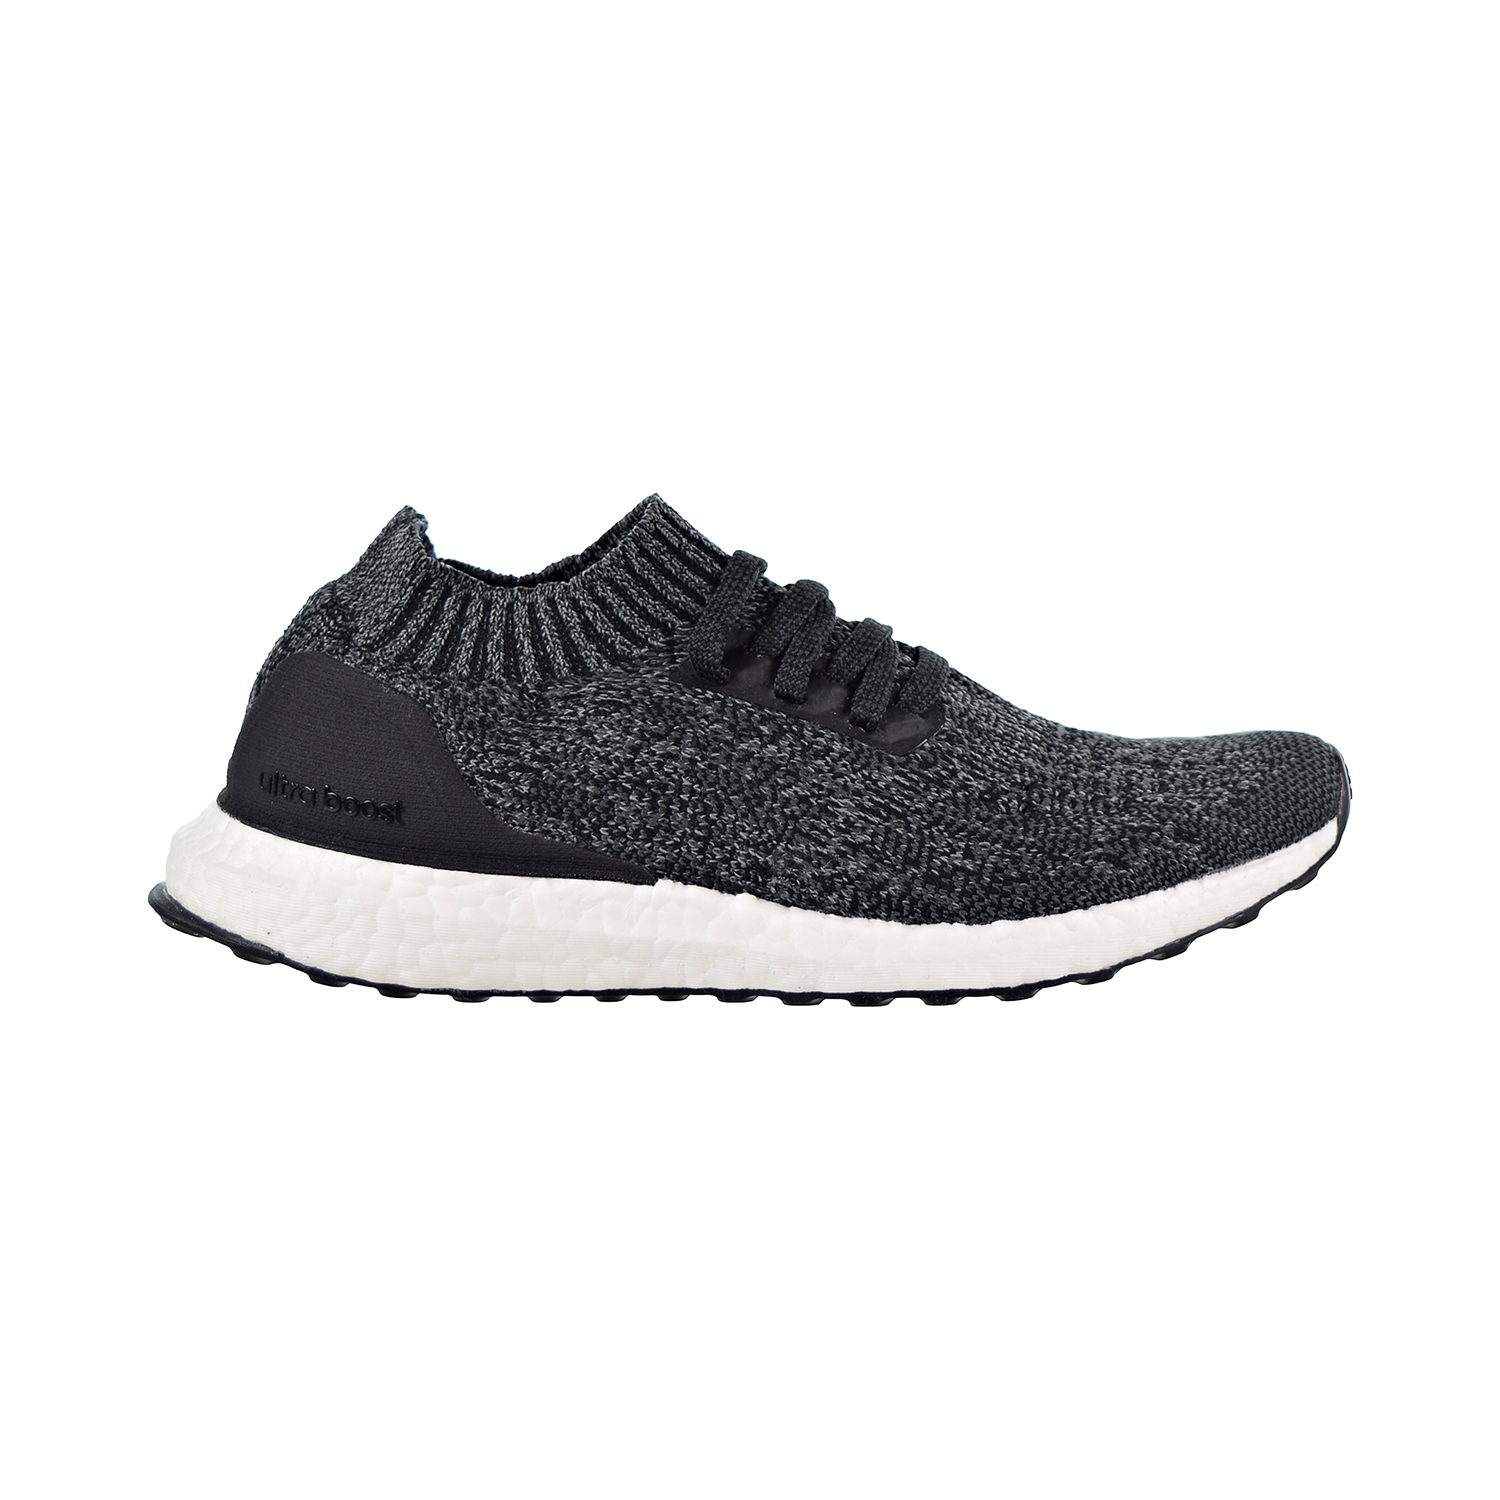 Details about Adidas Ultraboost Uncaged Women s Running Shoes Black Solid  Grey White S80779 1e2a1d6778e4b